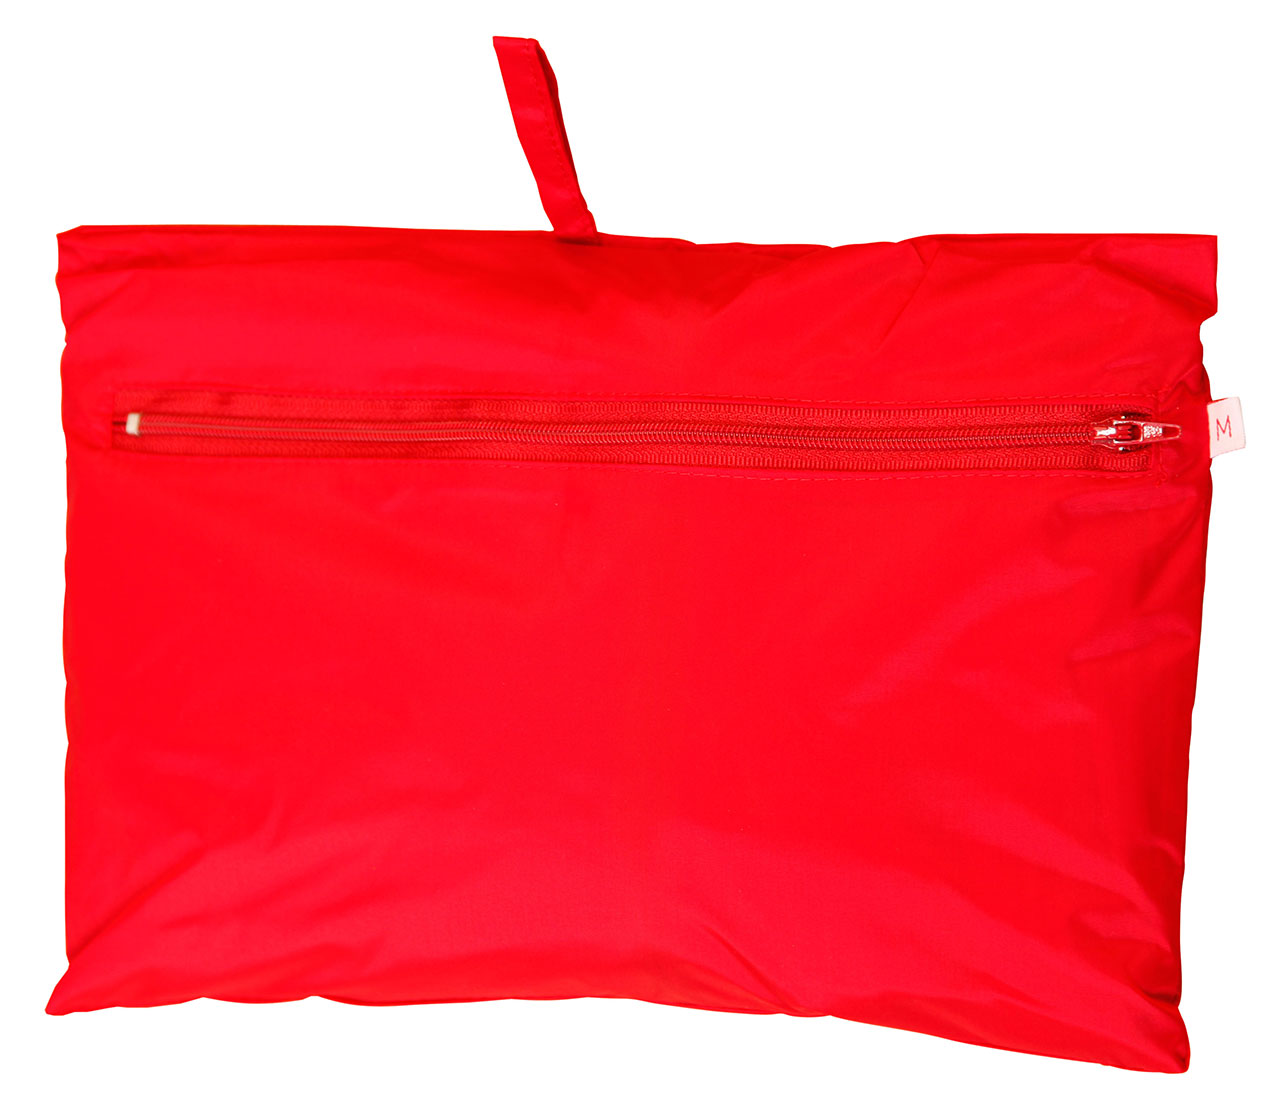 JK10K_Red_Bag